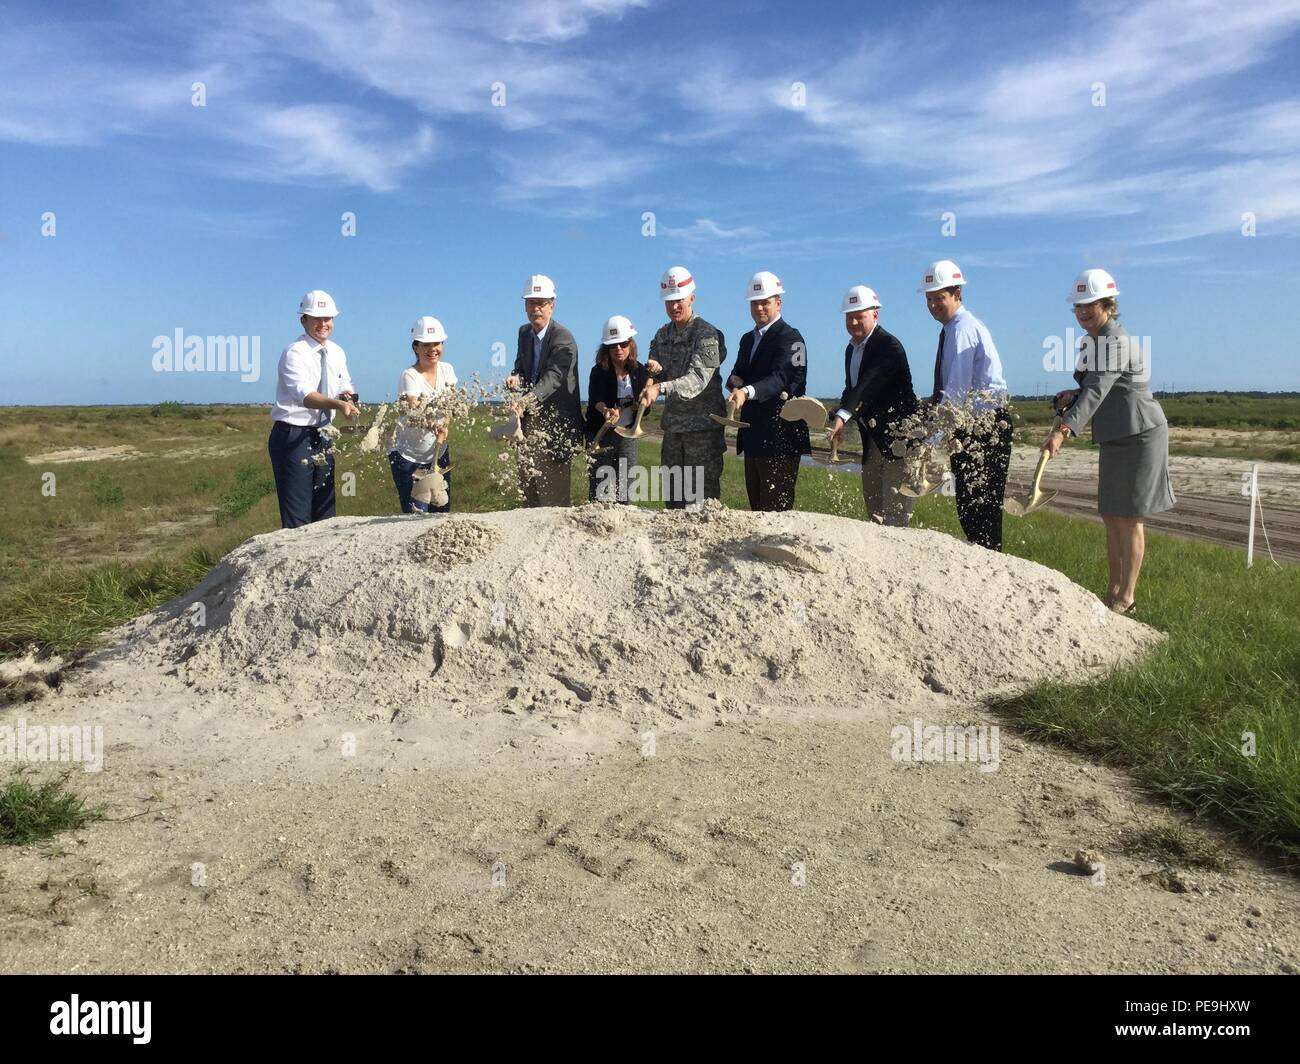 Federal, state and local officials celebrated the start of a major construction contract for the reservoir component of the C-44 Reservoir and Stormwater Treatment Area project Nov. 20, 2015, a critical restoration project to restore America's Everglades. Stock Photo